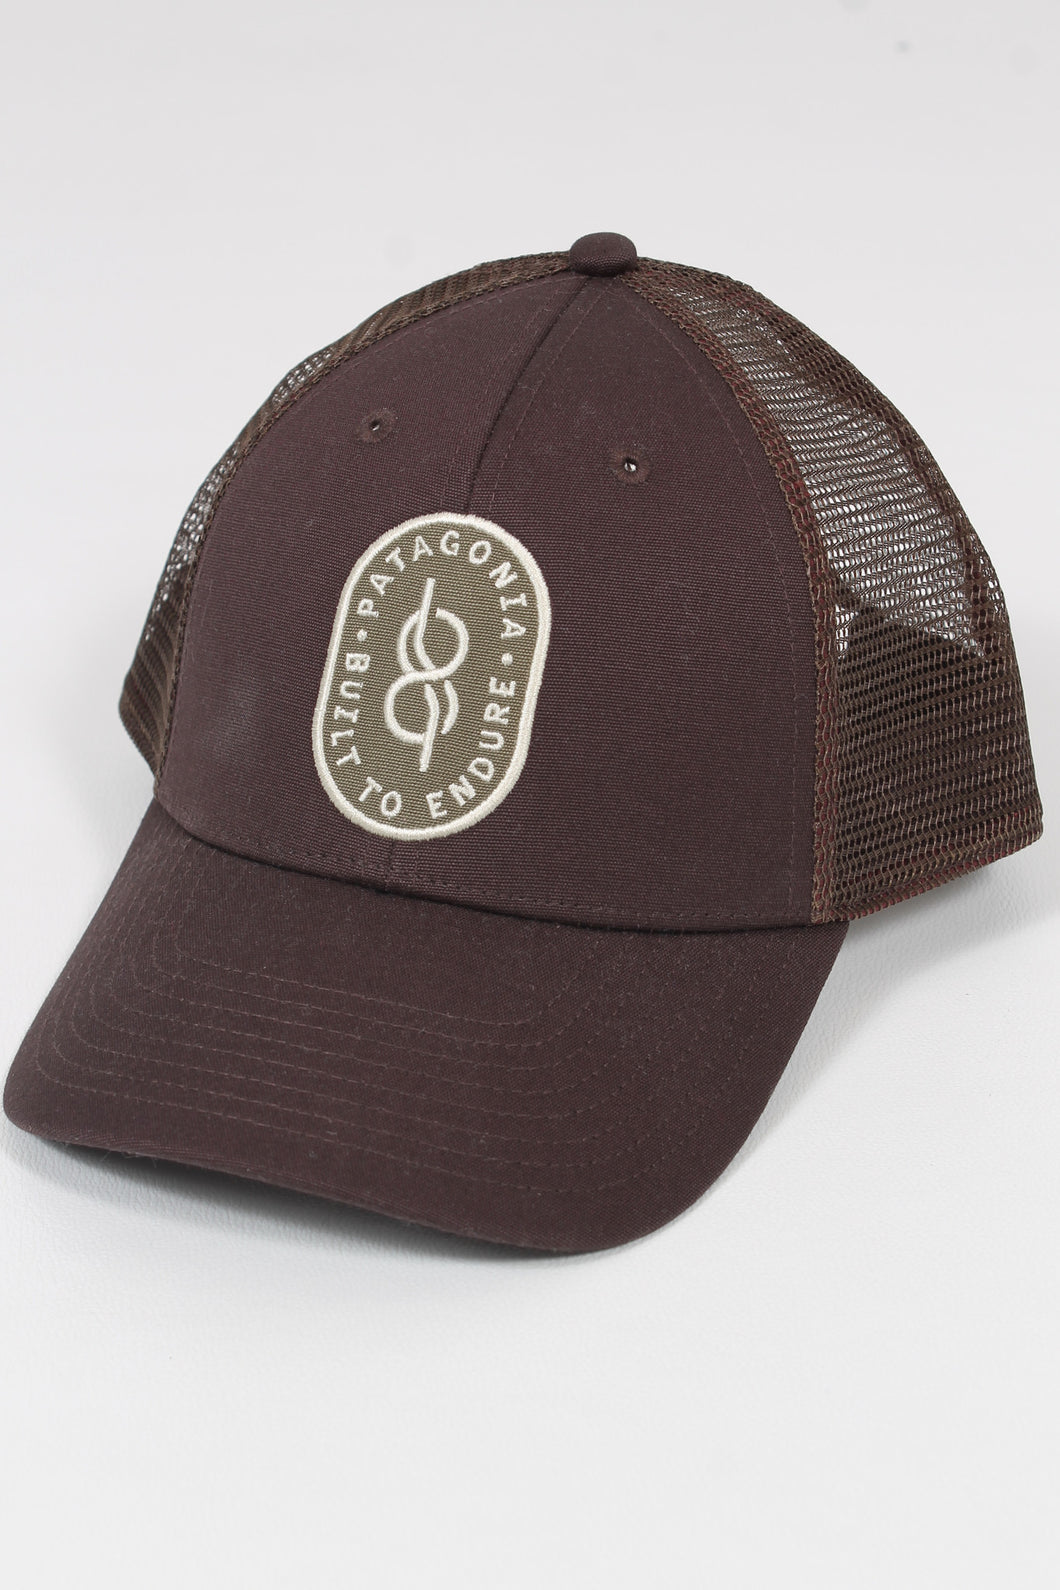 Wander Brown- Patagonia Nodded LoPro Trucker Hat